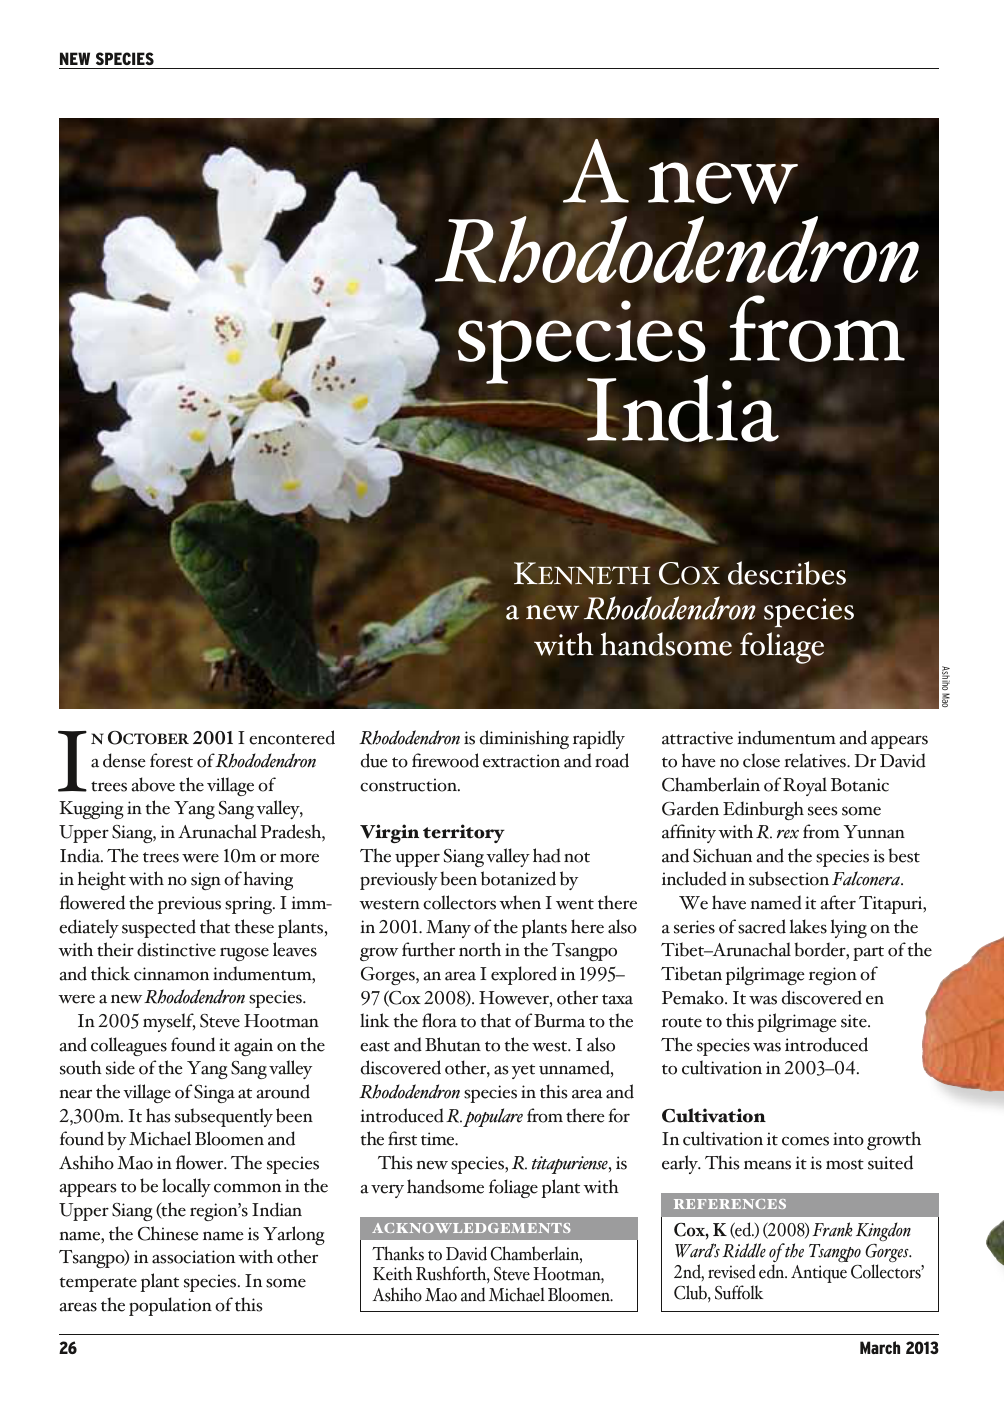 A New Rhododendron Species From India